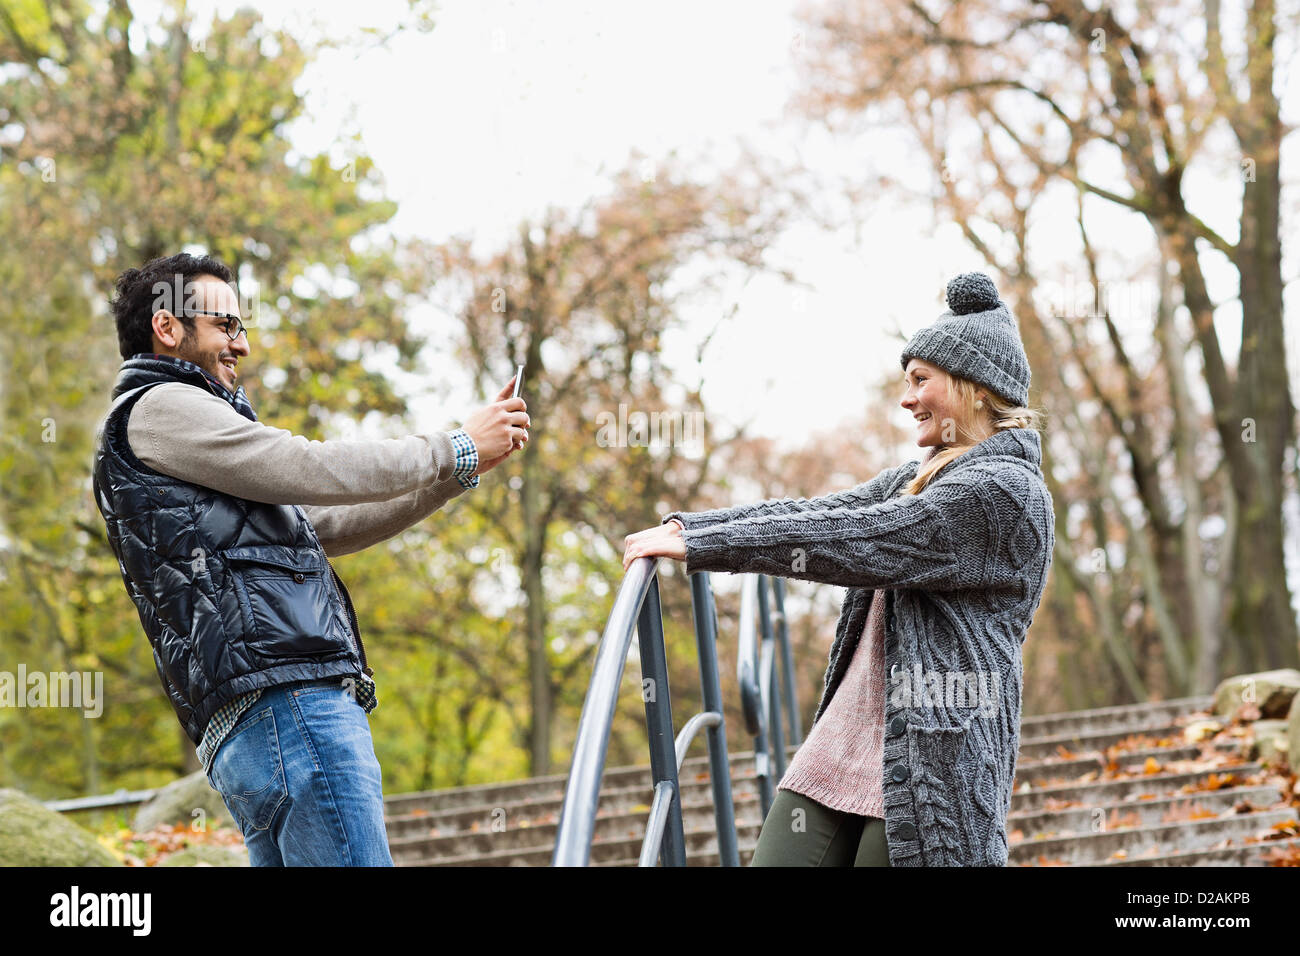 Man taking picture of girlfriend in park - Stock Image